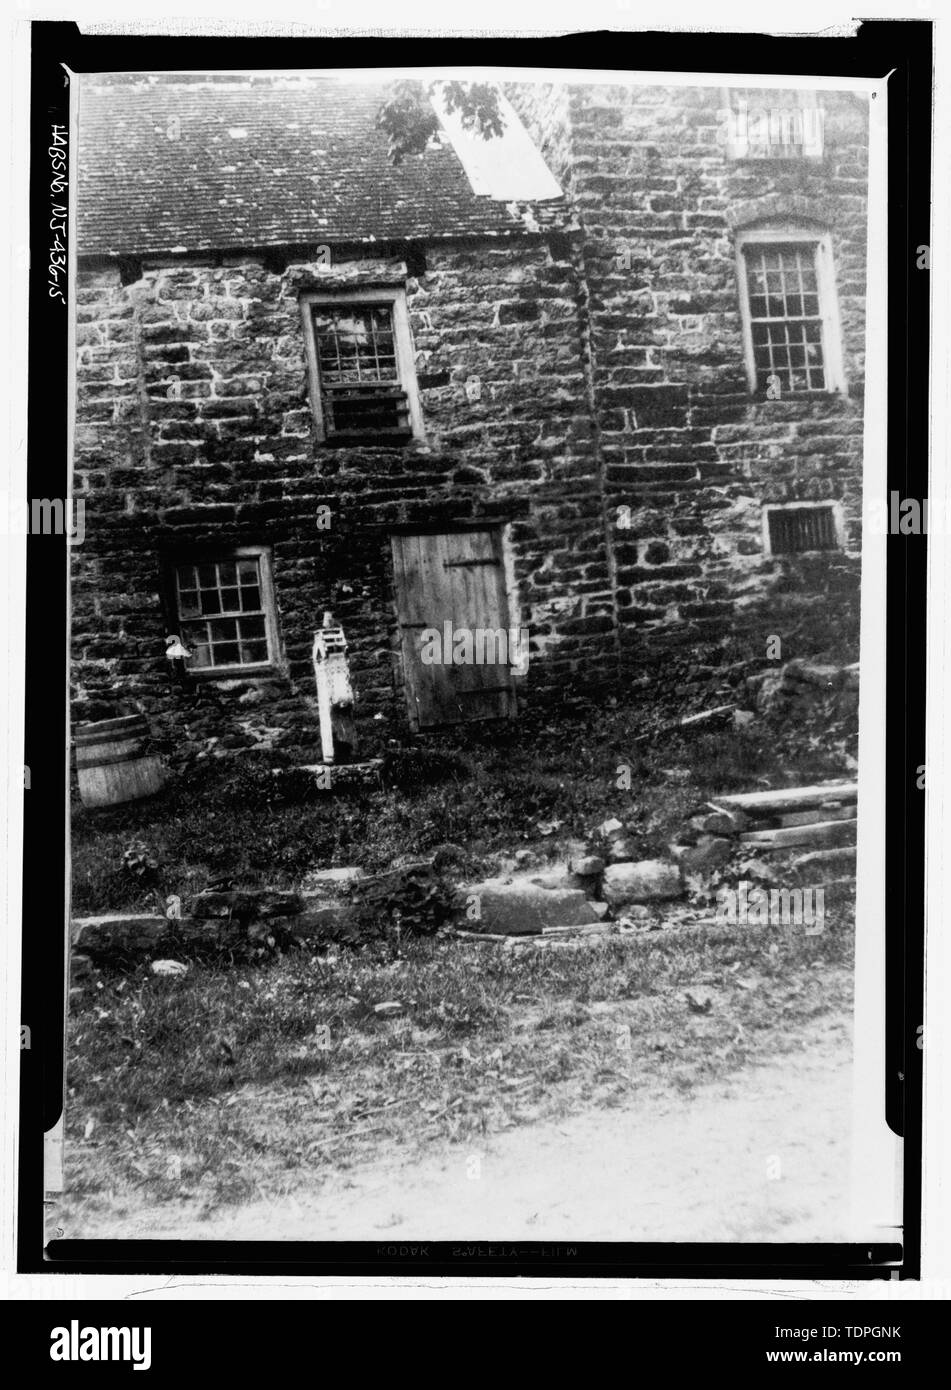 Photographer unknown, ca. 1910 NORTHWEST FACADE, NORTHEAST ADDITION - Isaac Van Campen House, Old Mine Road, Wallpack Center, Sussex County, NJ - Stock Image